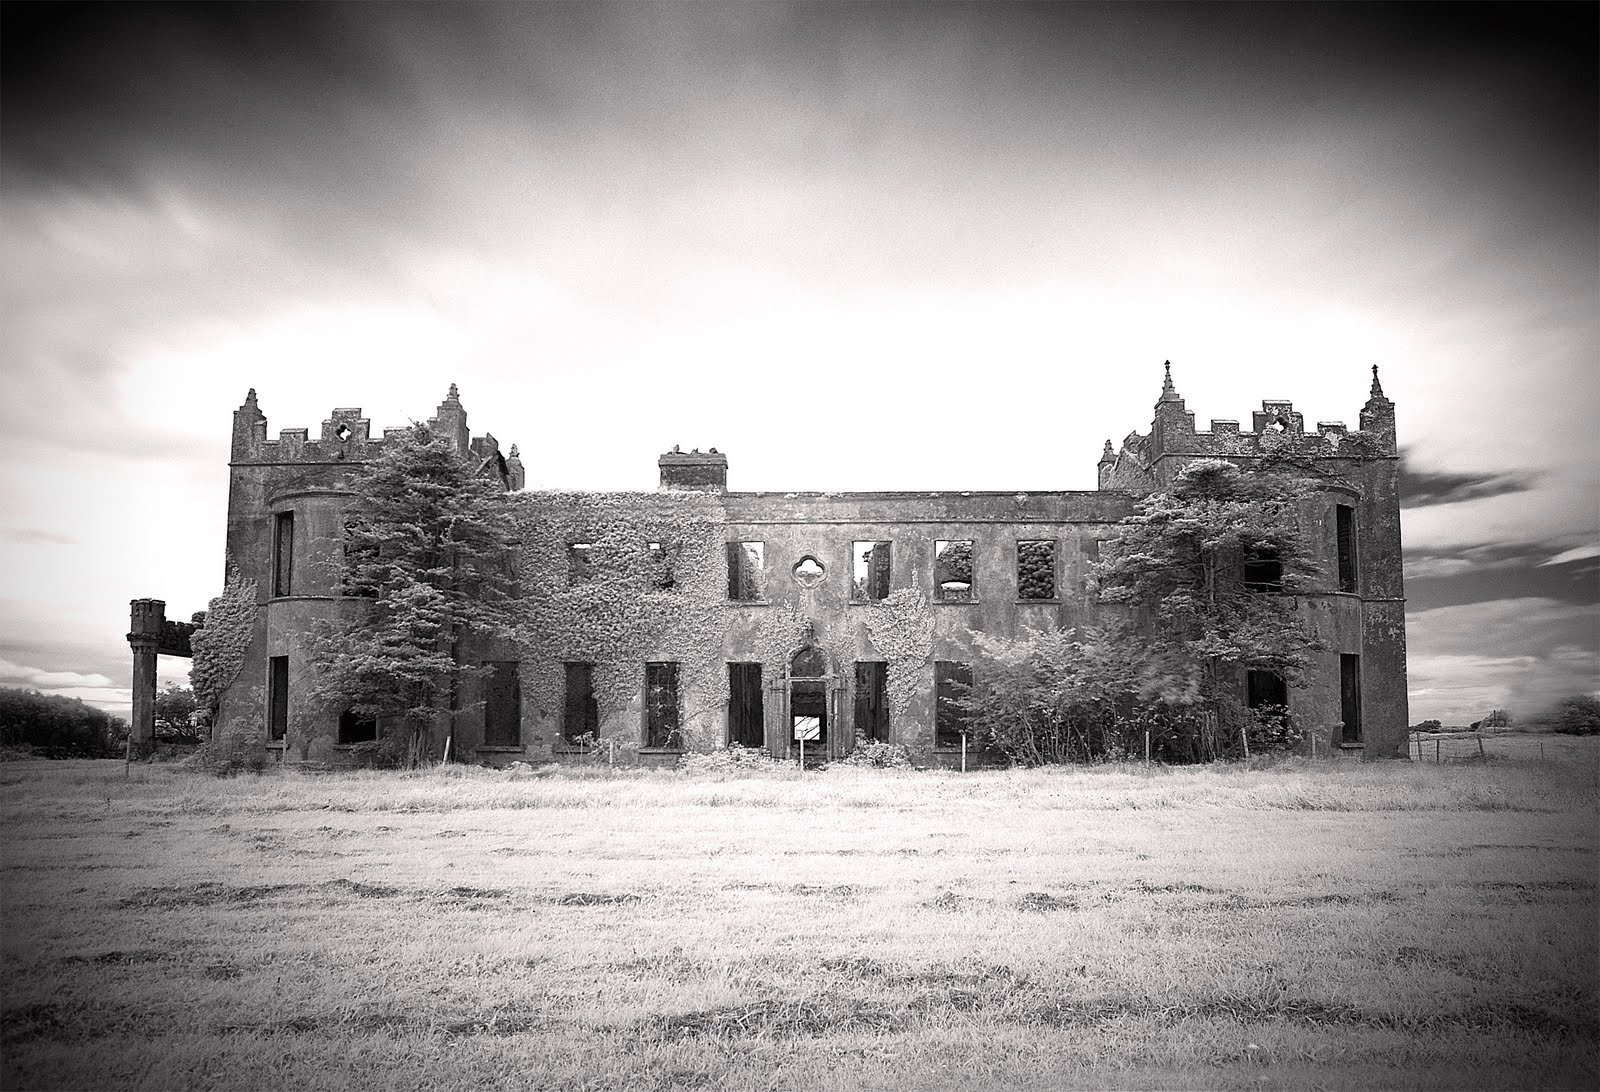 The HardiBlog: Abandoned Mansions- an exhibition of photographs by